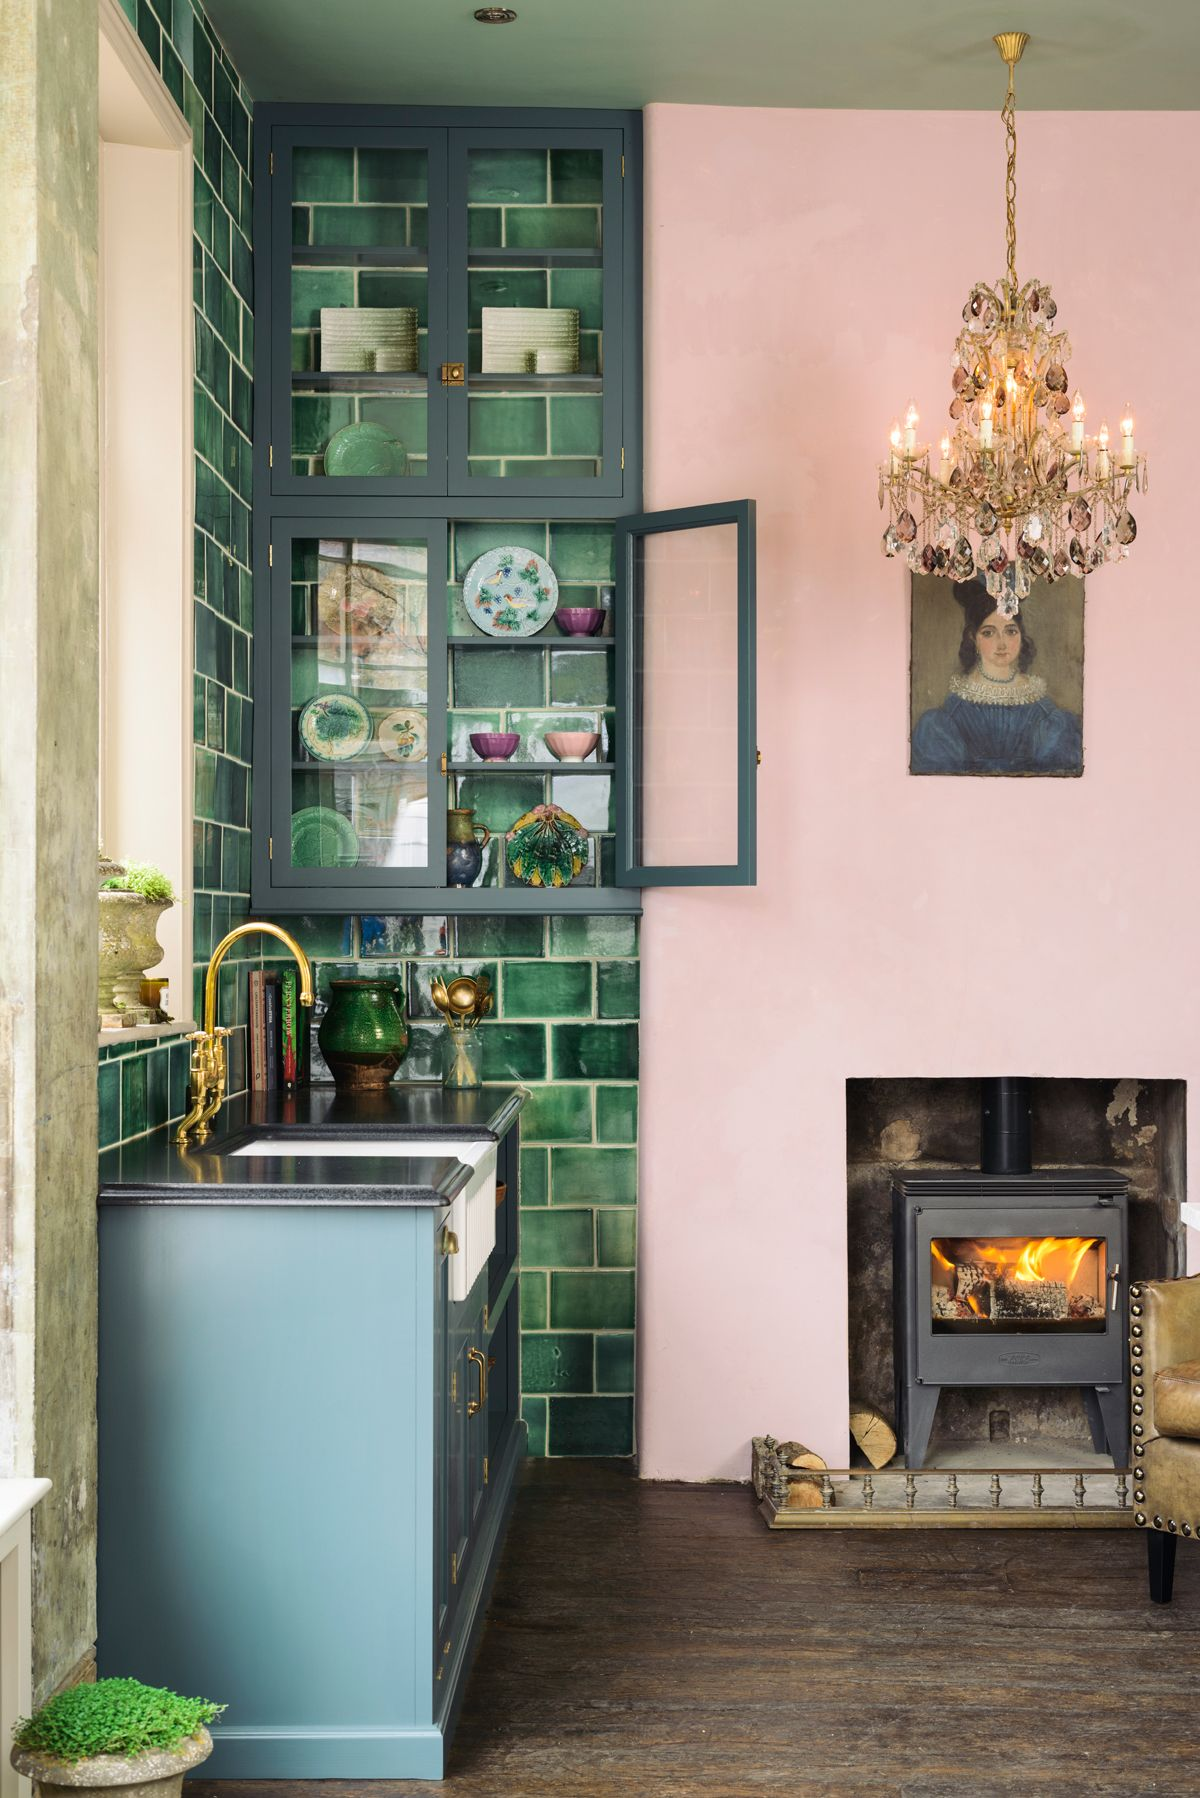 A Pink & Green Kitchen | Pinterest | Showroom, Cupboard and Greyish blue